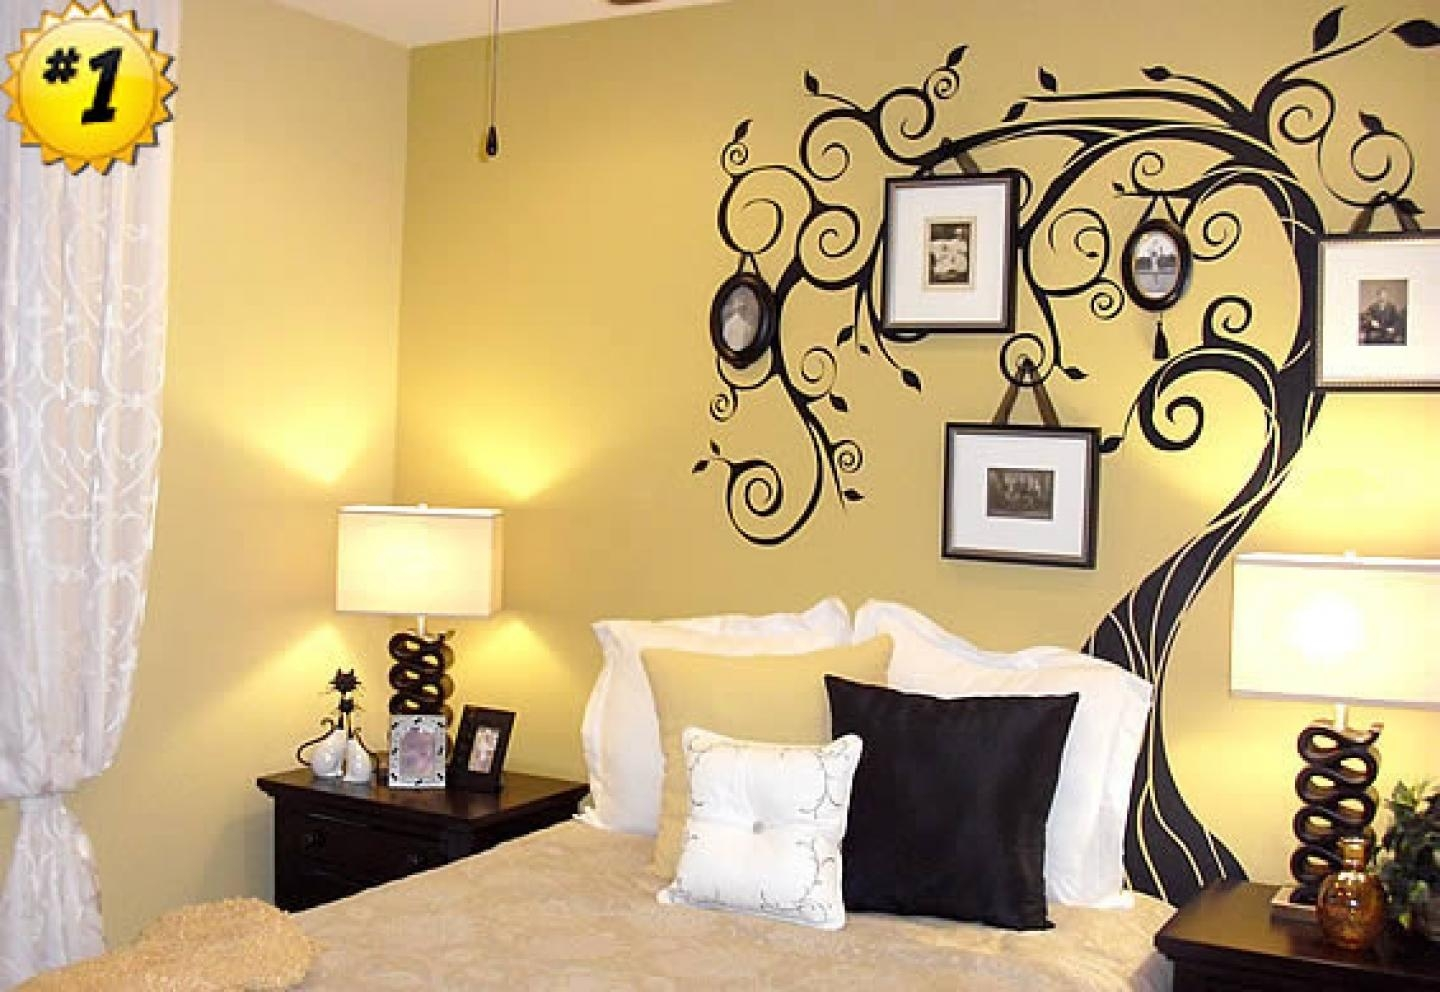 Bedroom Wall Art Paintings And With Regard To Wall Art For Bedrooms (Image 6 of 21)